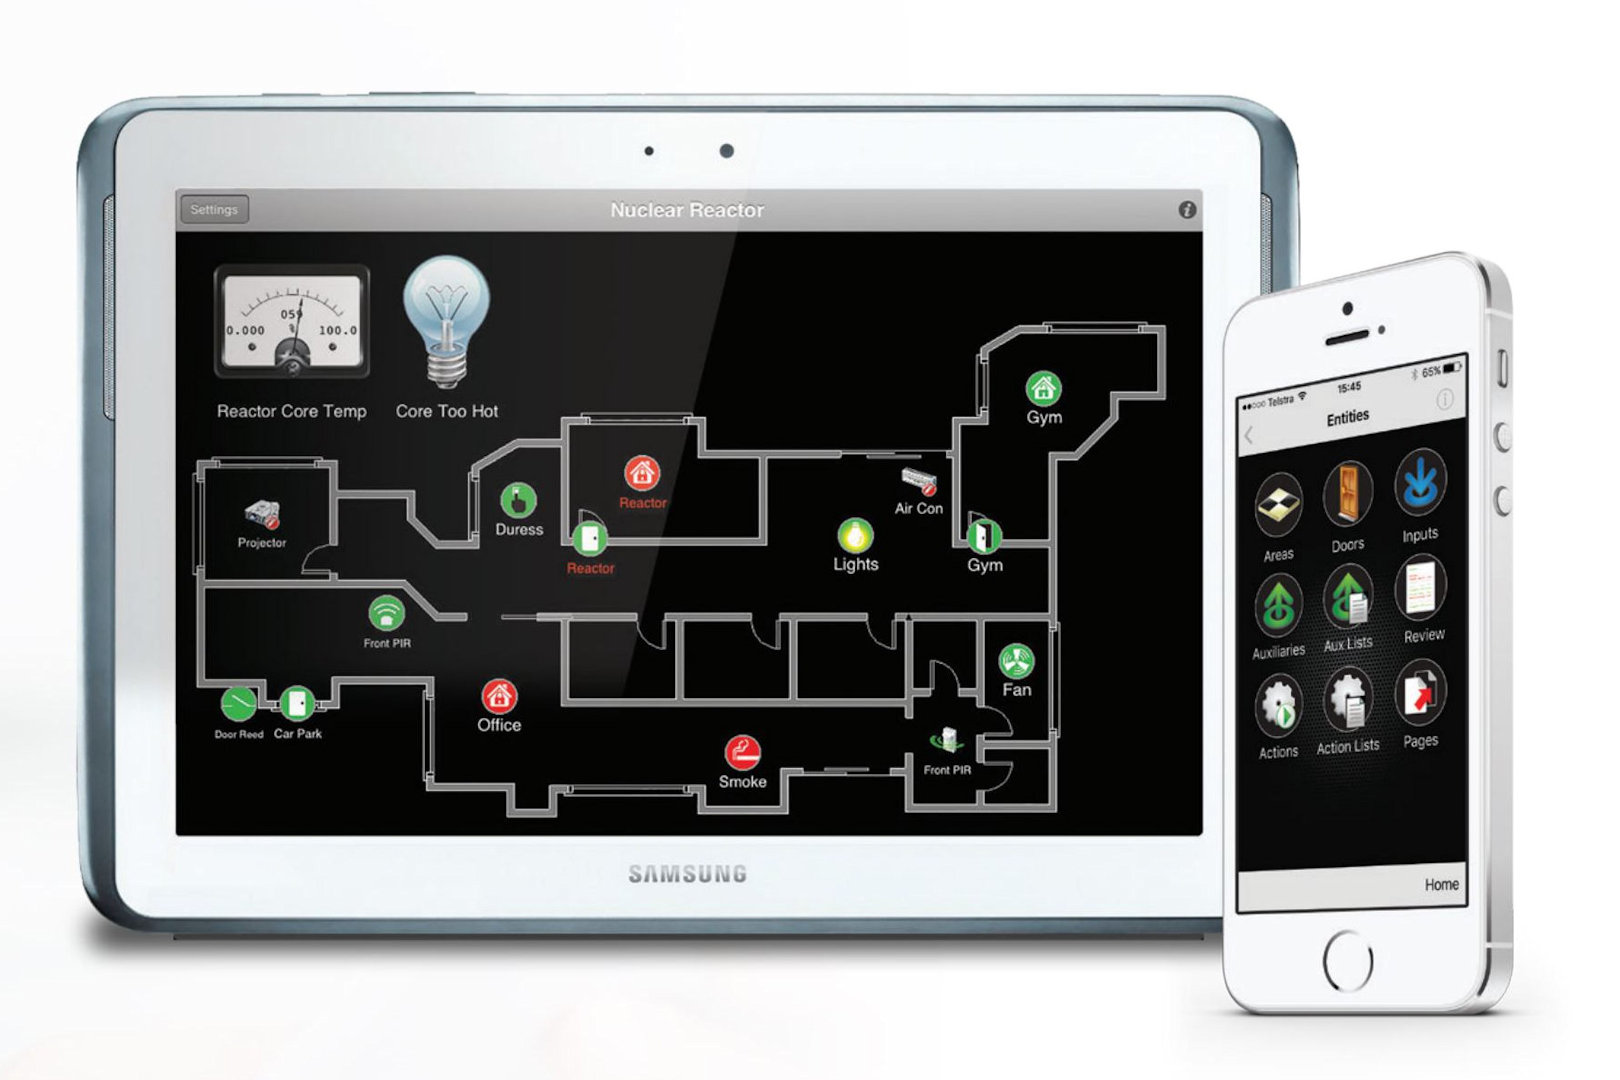 integriti access control software displayed on tablet and phone screen